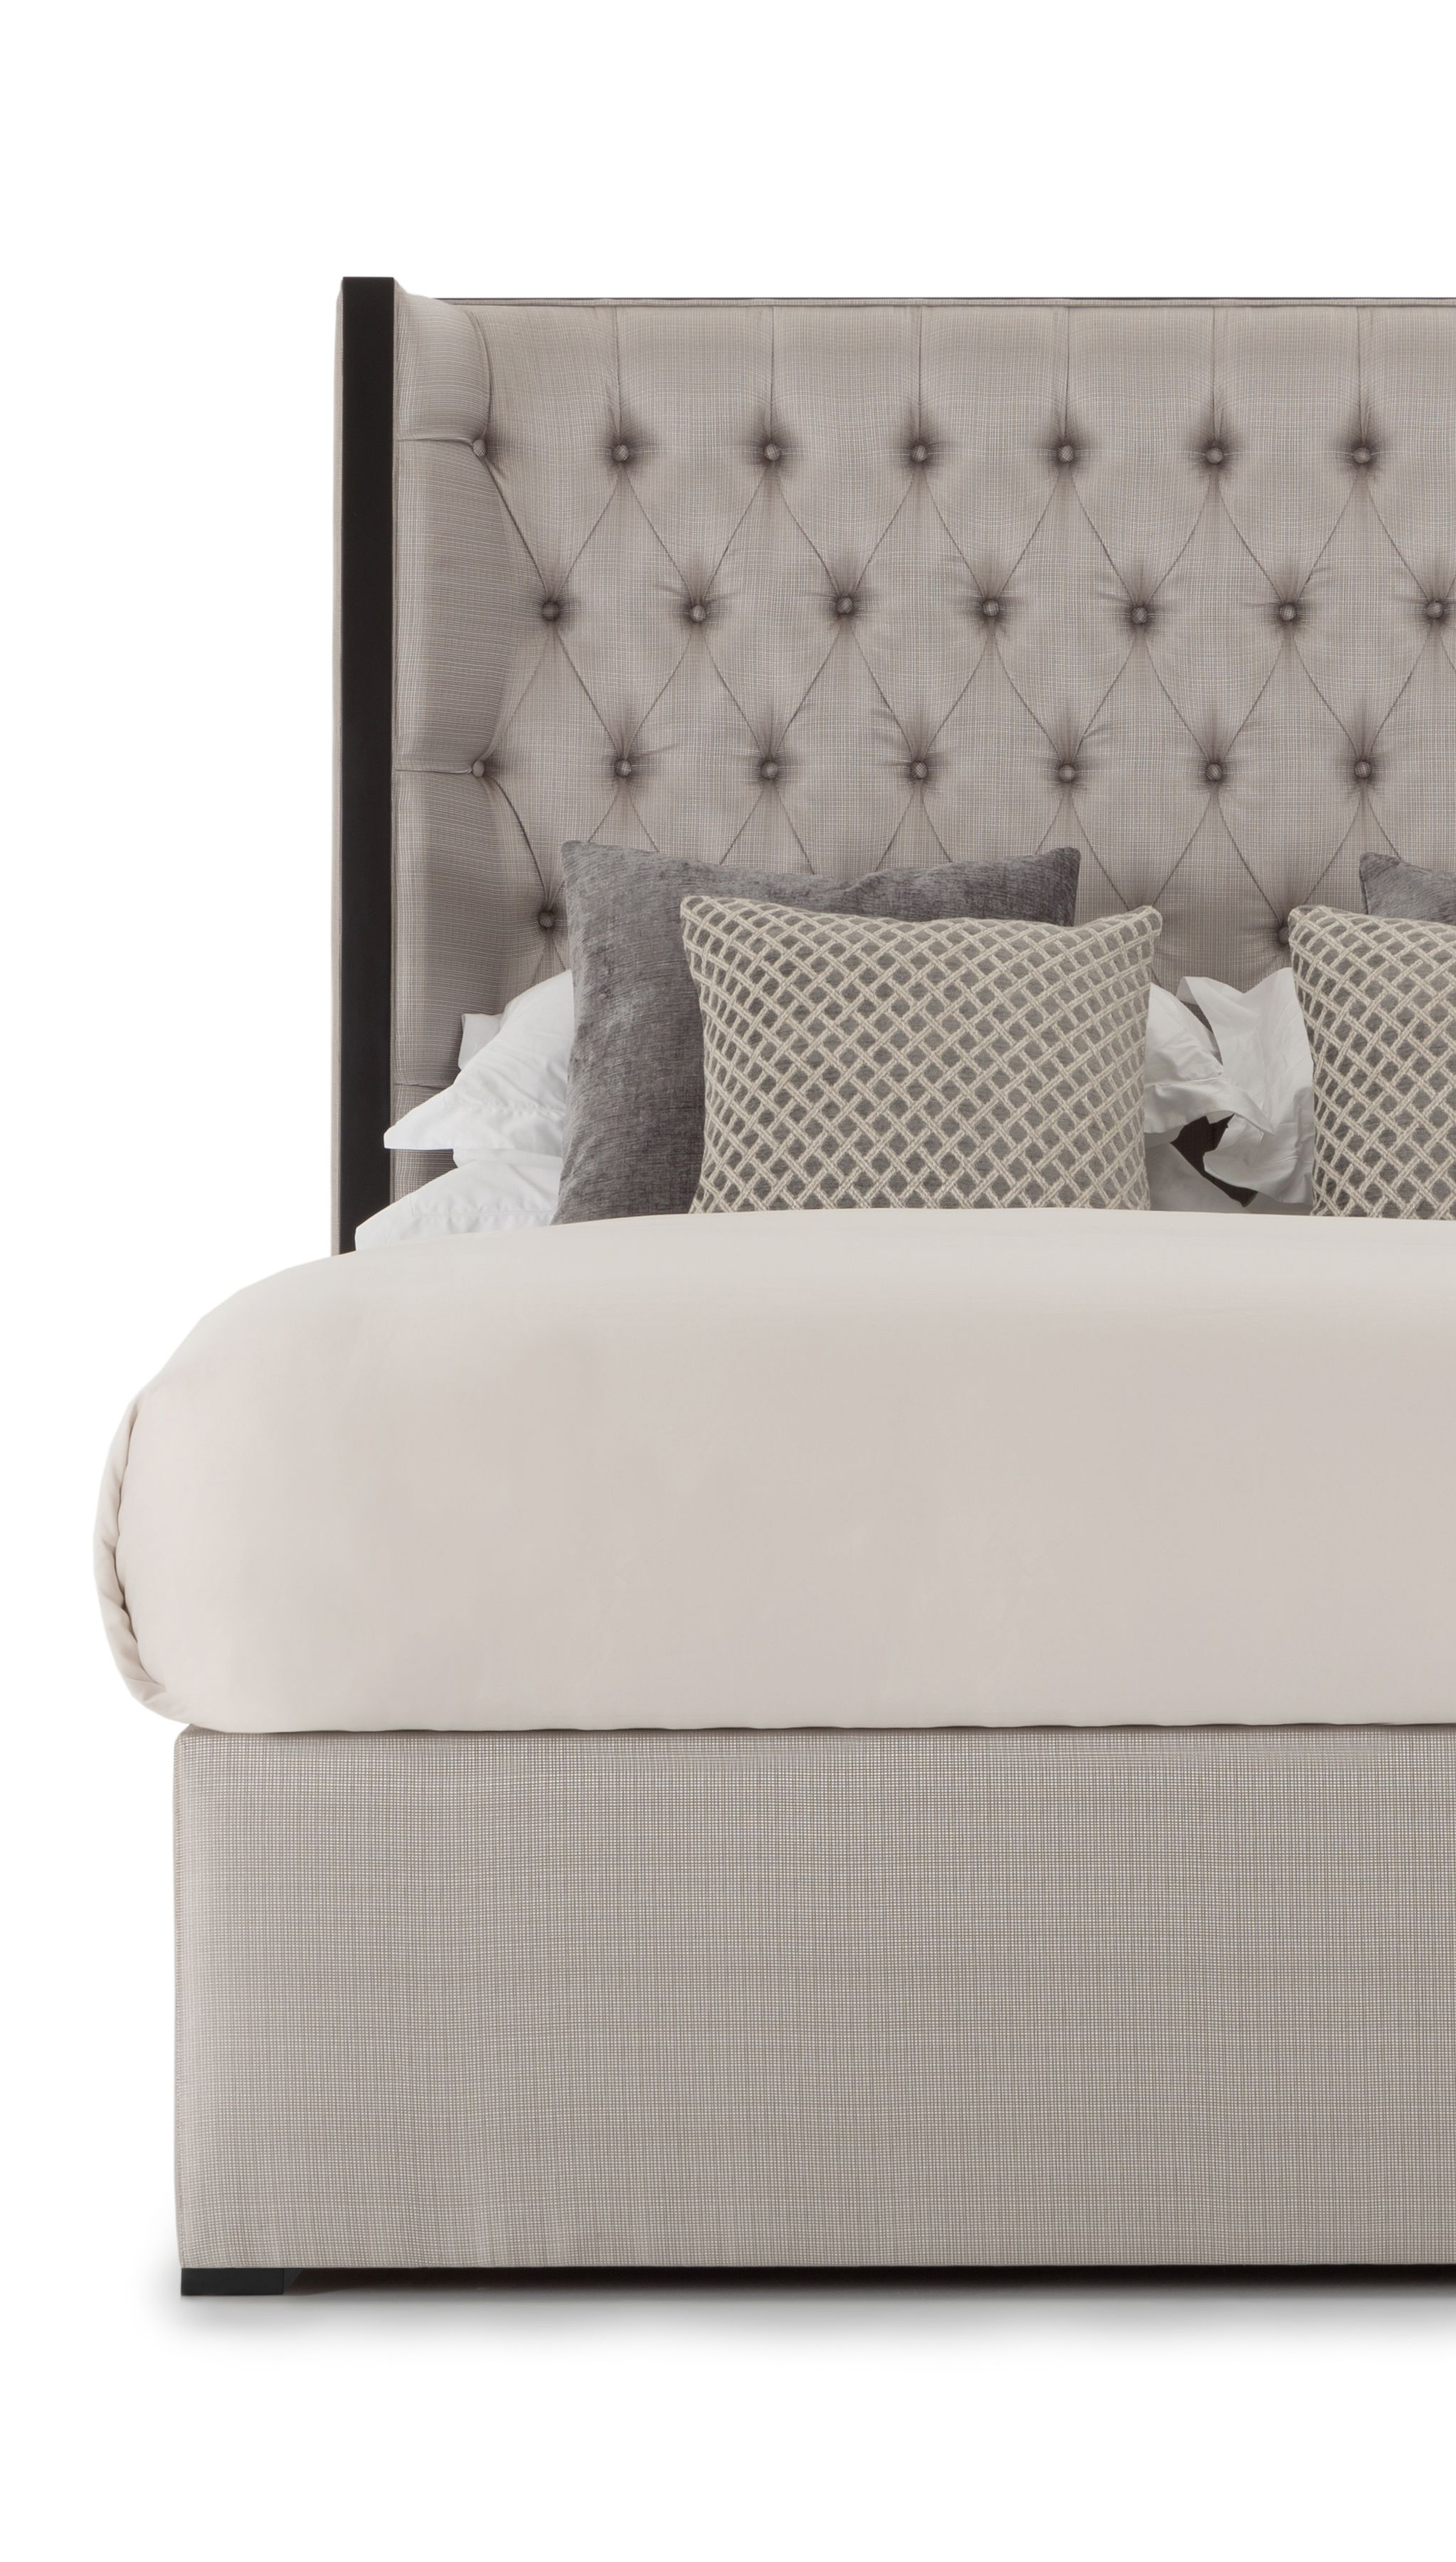 William Upholstery Bed Bed Headboards For Beds